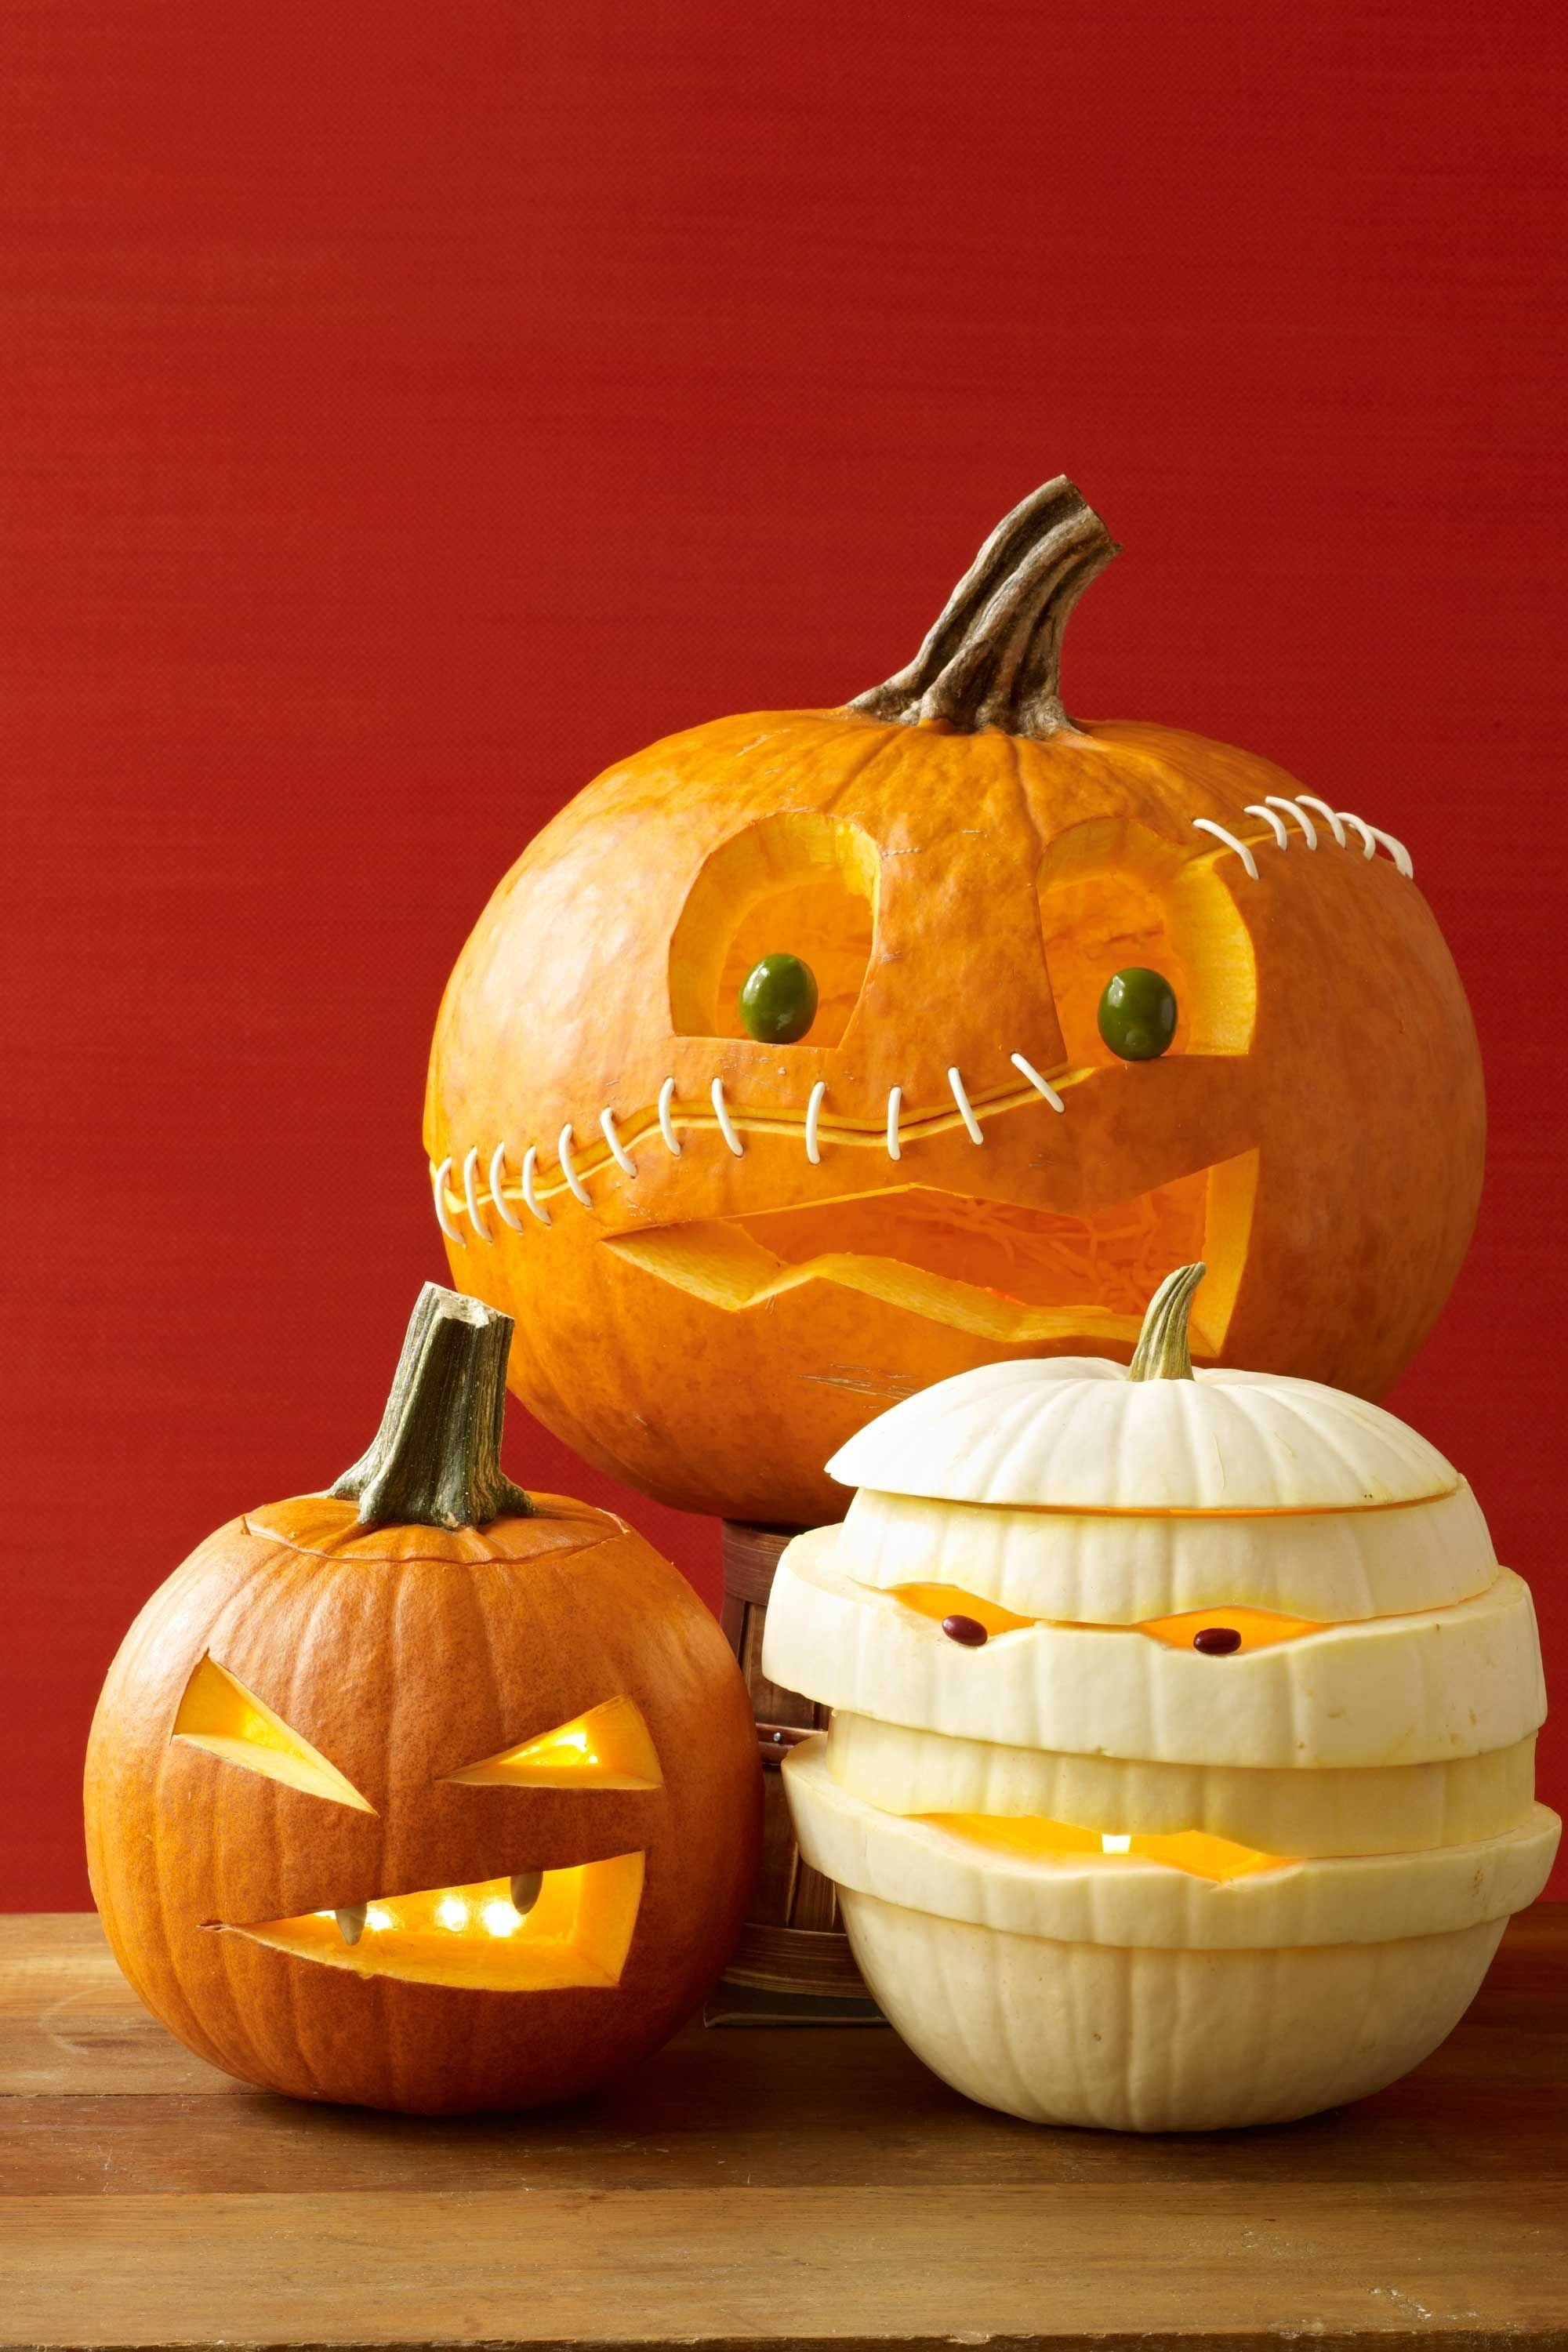 10 Lovely Cool Pumpkin Ideas Without Carving 65 of the most creative pumpkin carving ideas citrouille 2020